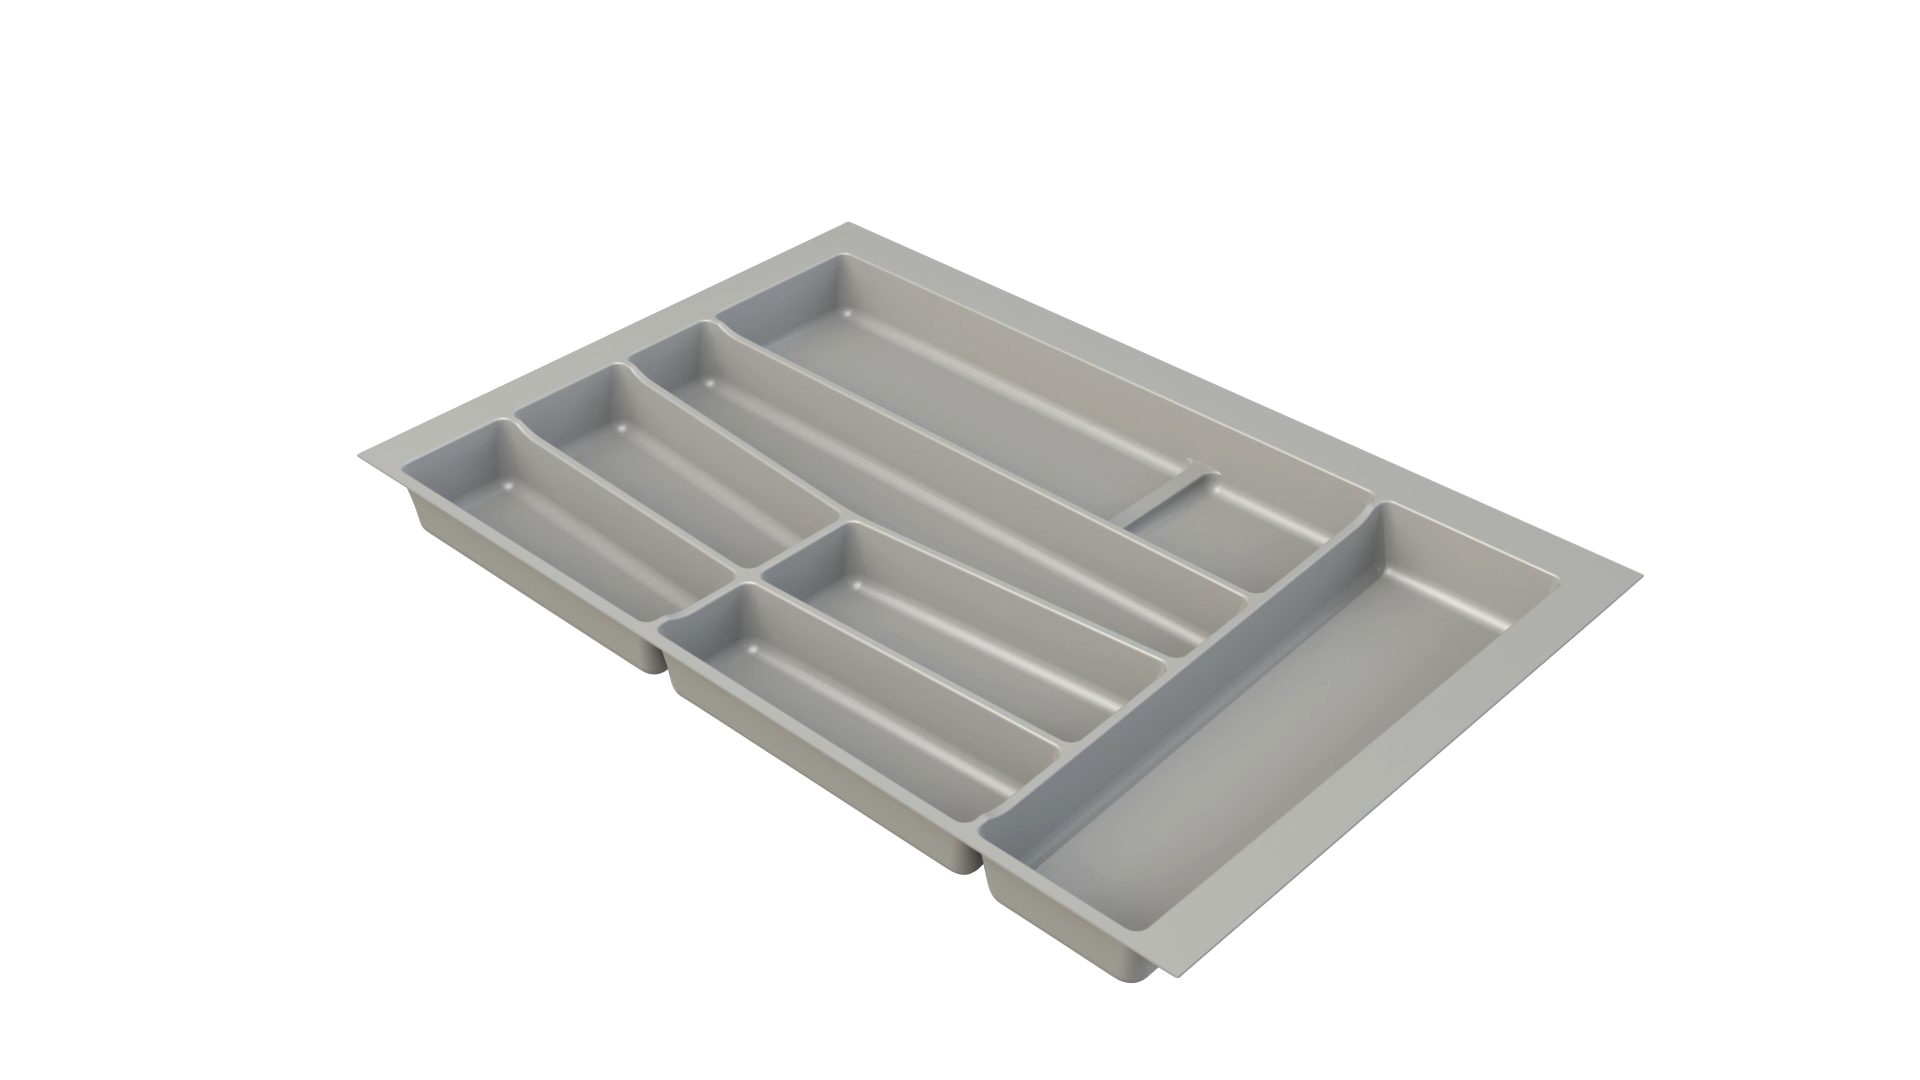 Premium Grey Cutlery Insert for 800mm wide Drawer for Kitchen